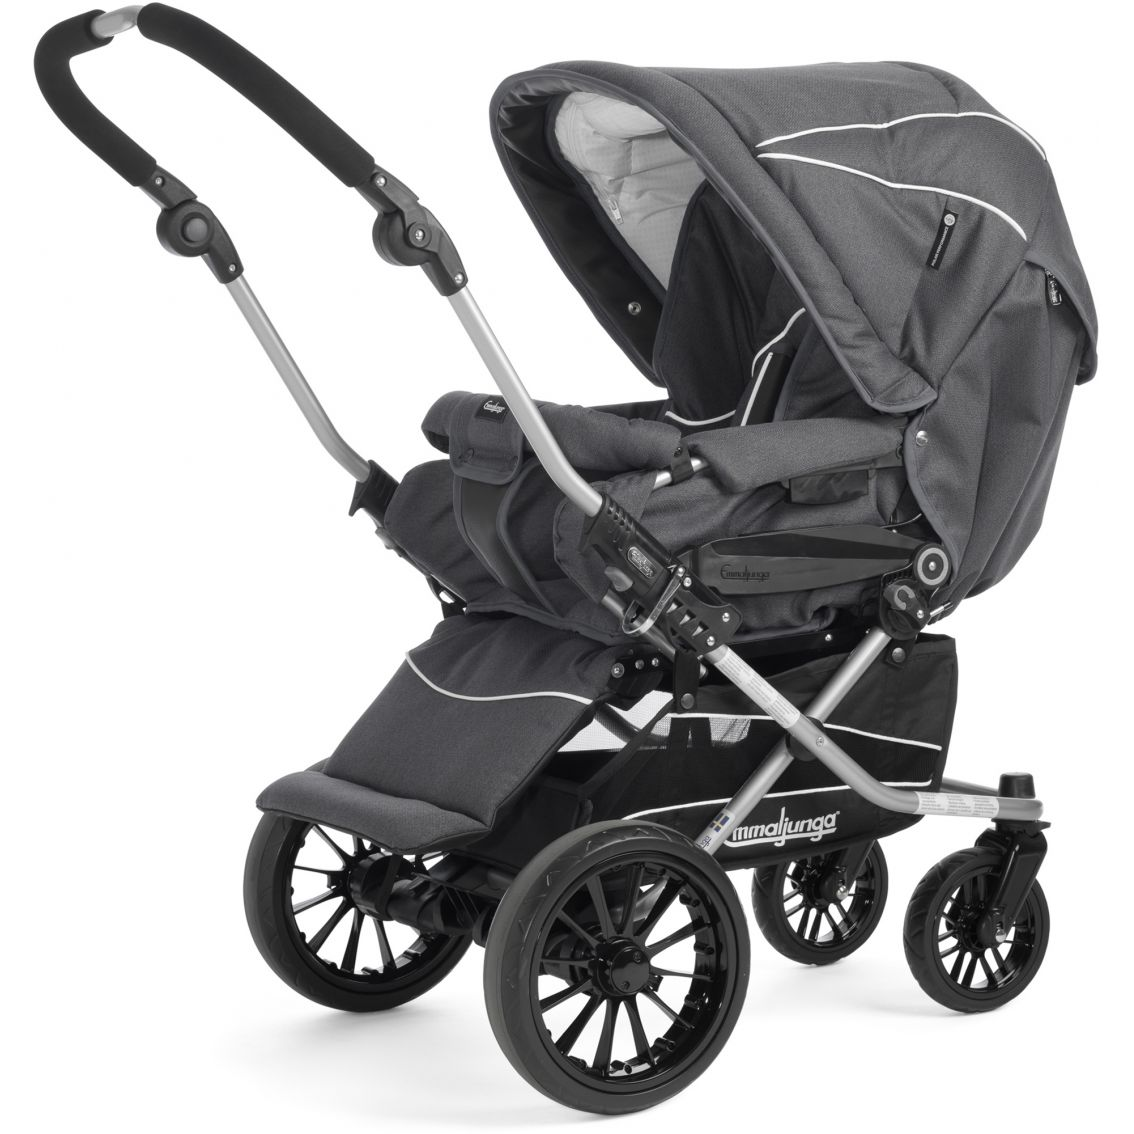 Emmaljunga Pram Stroller Bed Mattress Sale